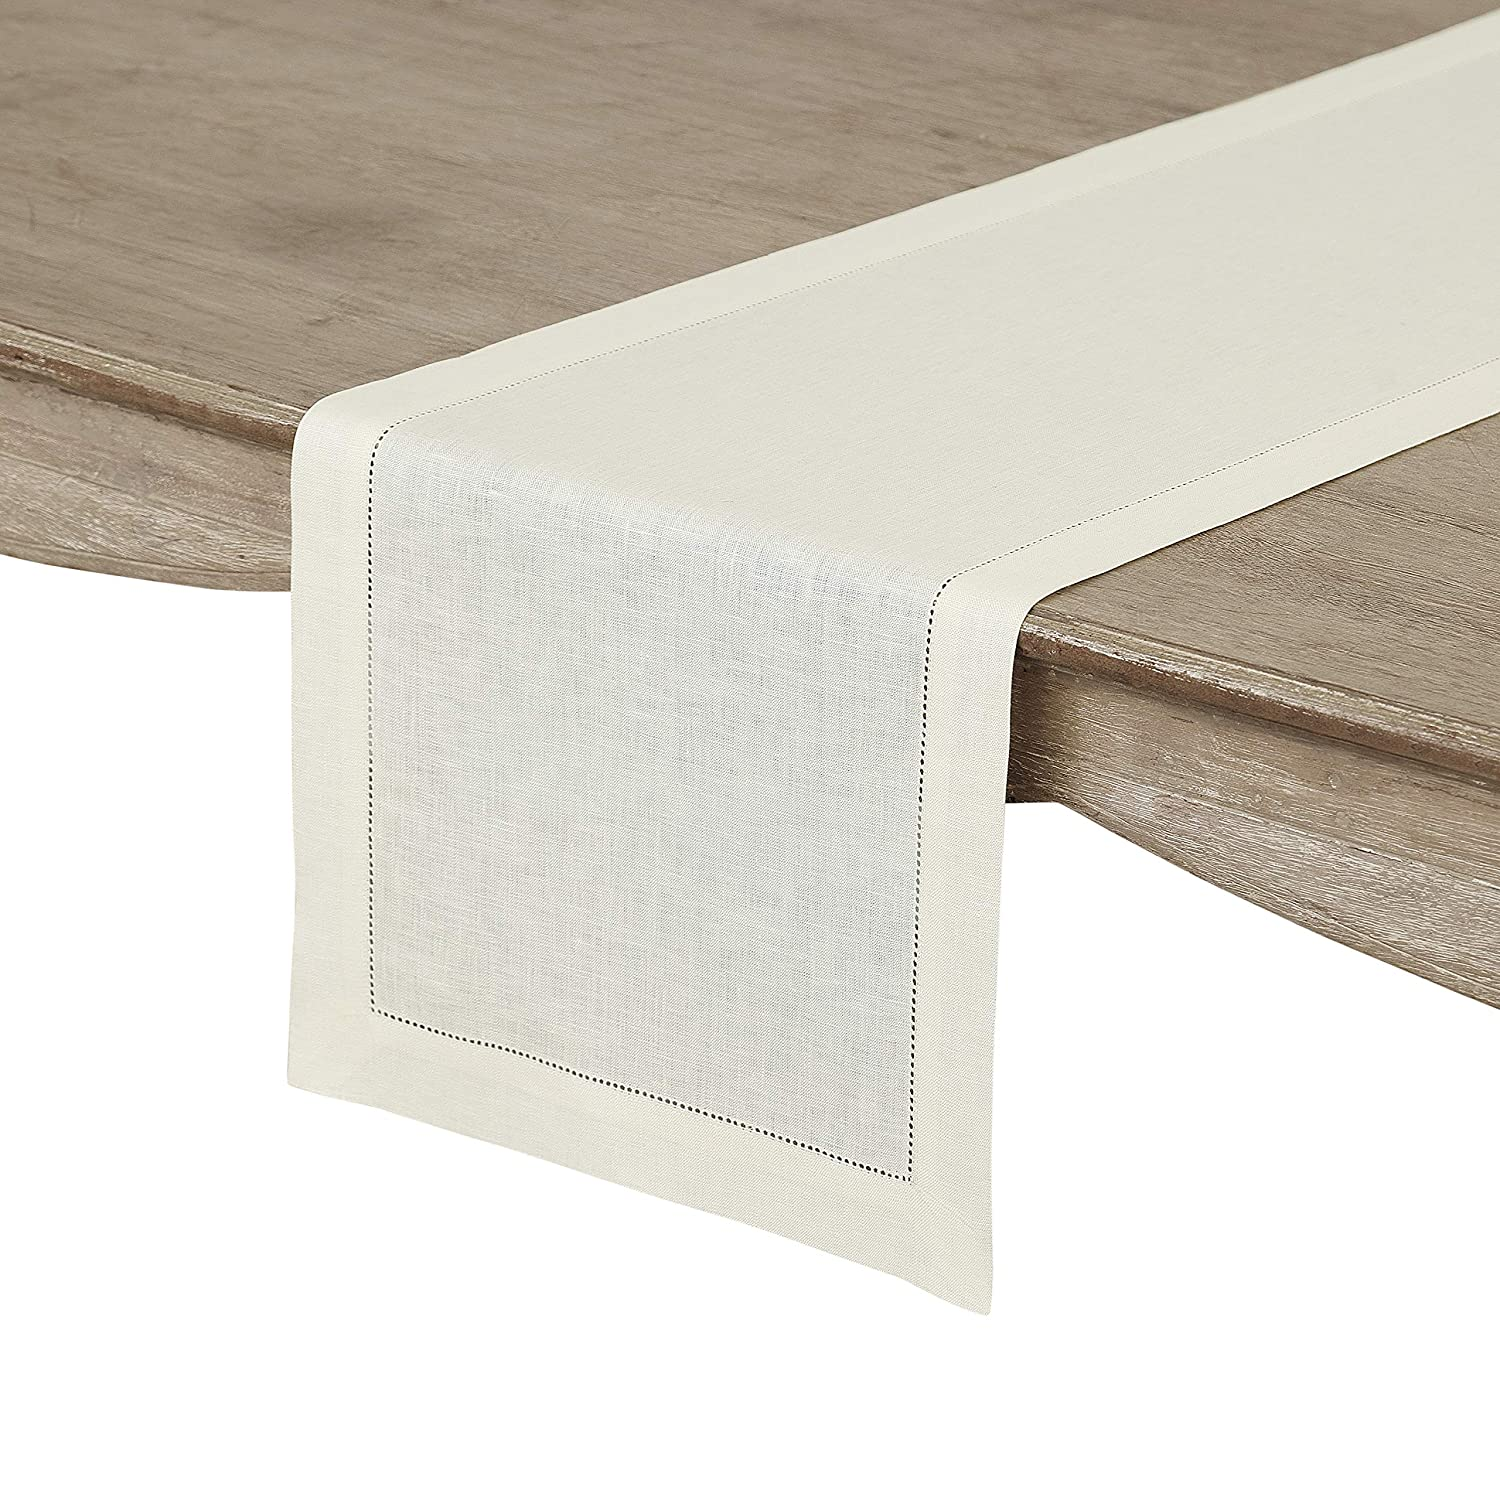 Solino Home Hemstitch Linen Table Runner - 14 x 72 Inch, Handcrafted from European Flax, Machine Washable Classic Hemstitch - Ivory